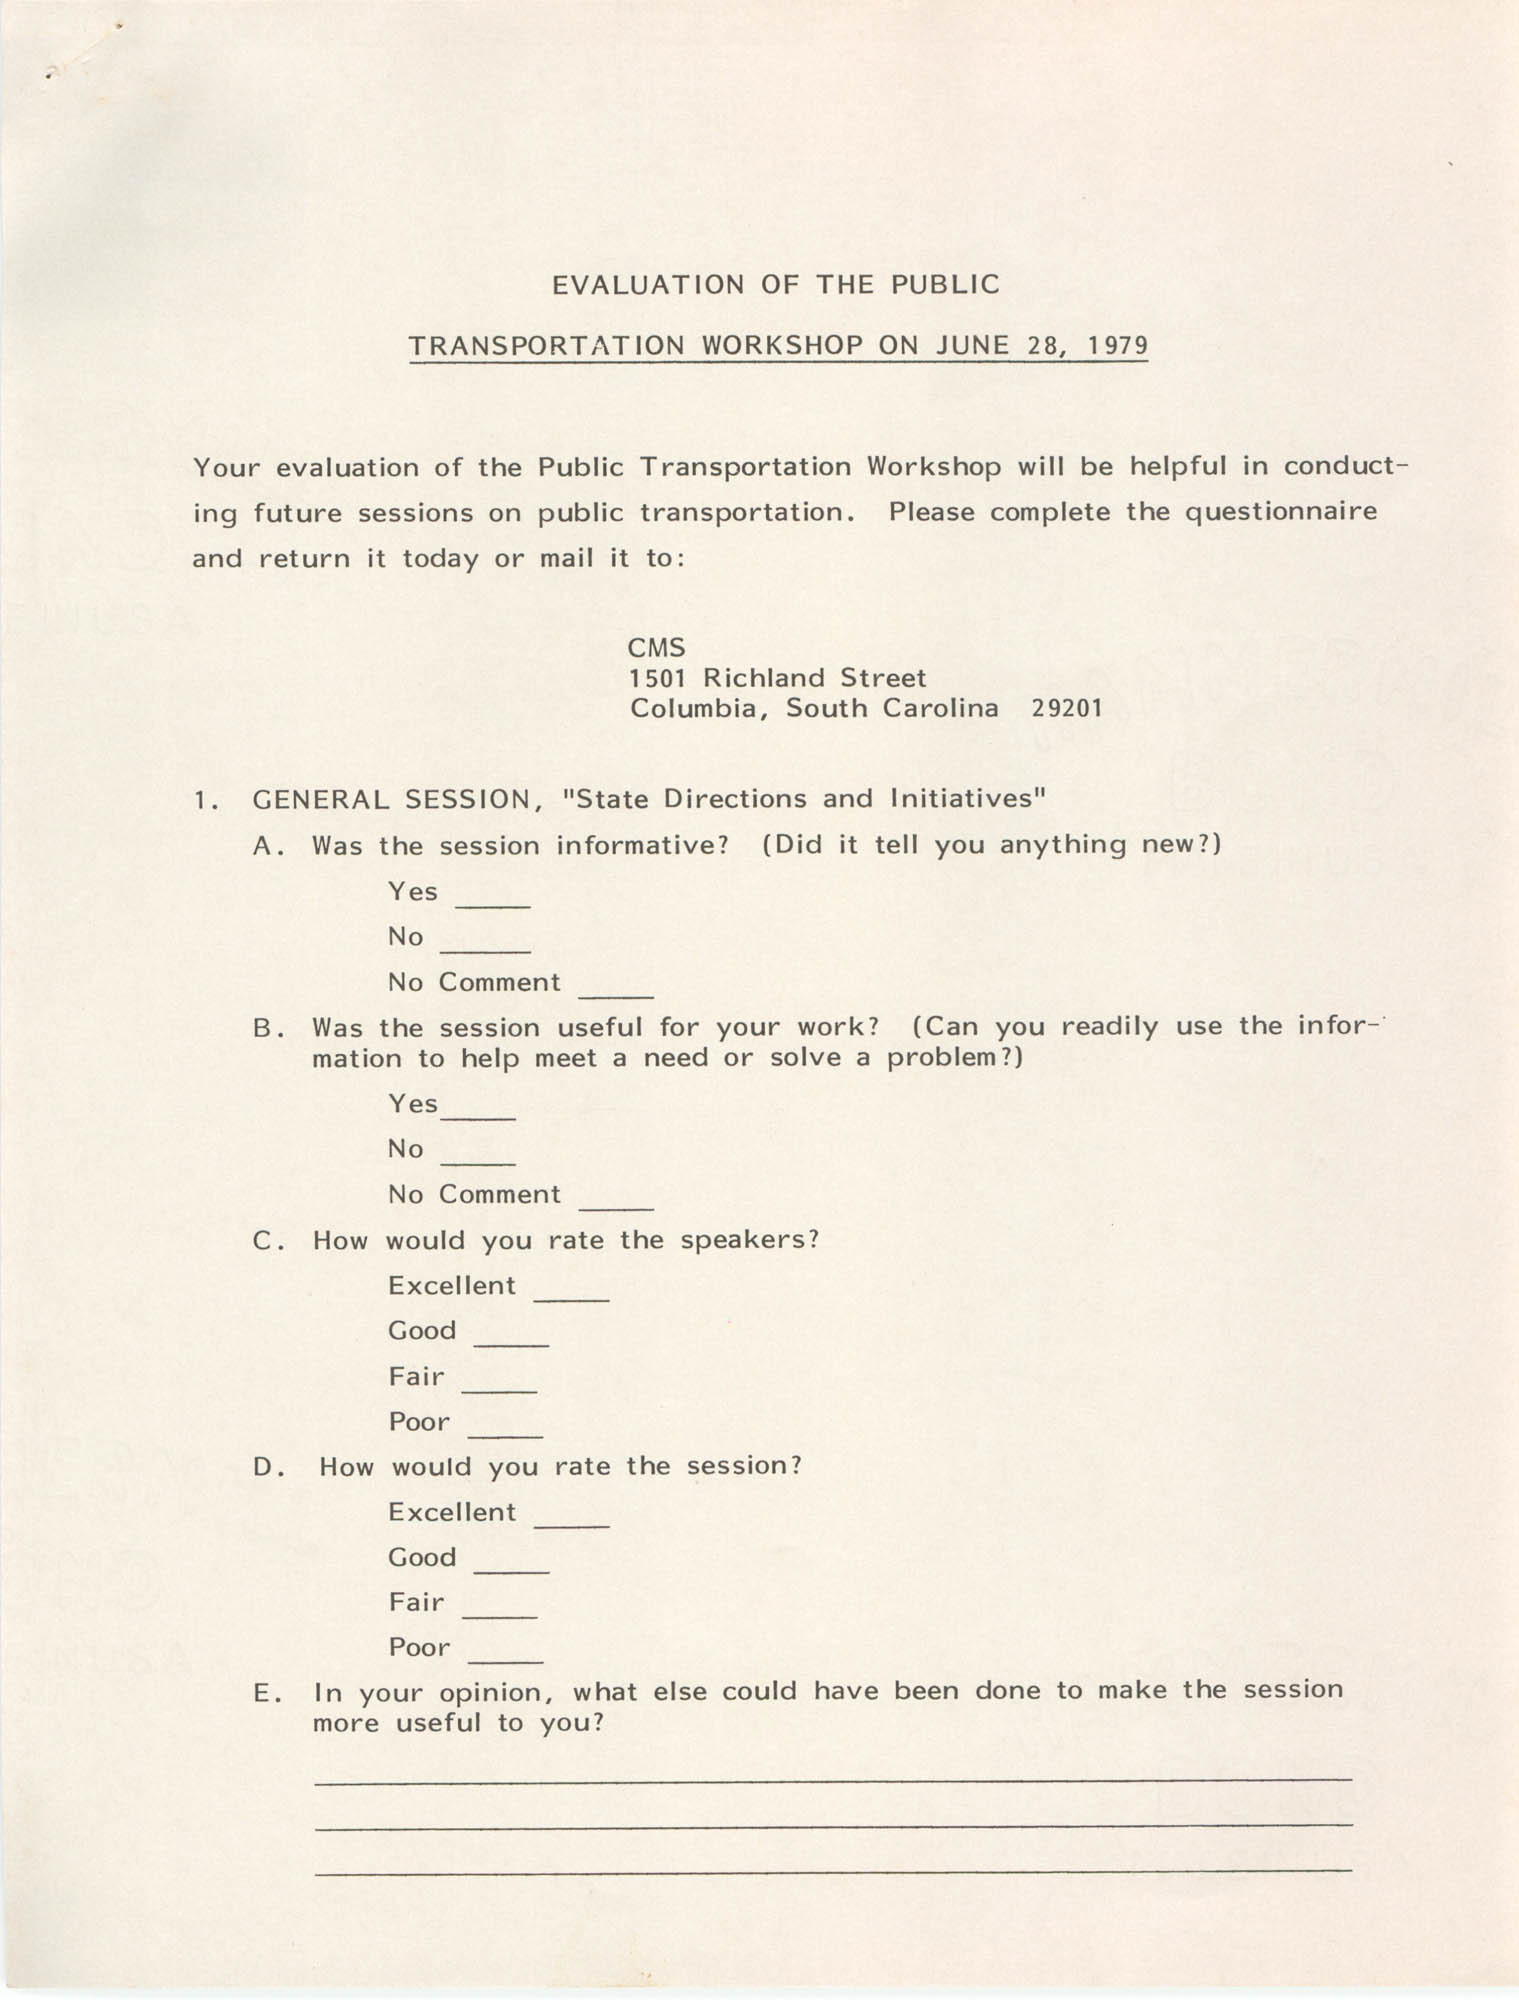 Evaluation of the Public Transportation Workshop on June 28, 1979